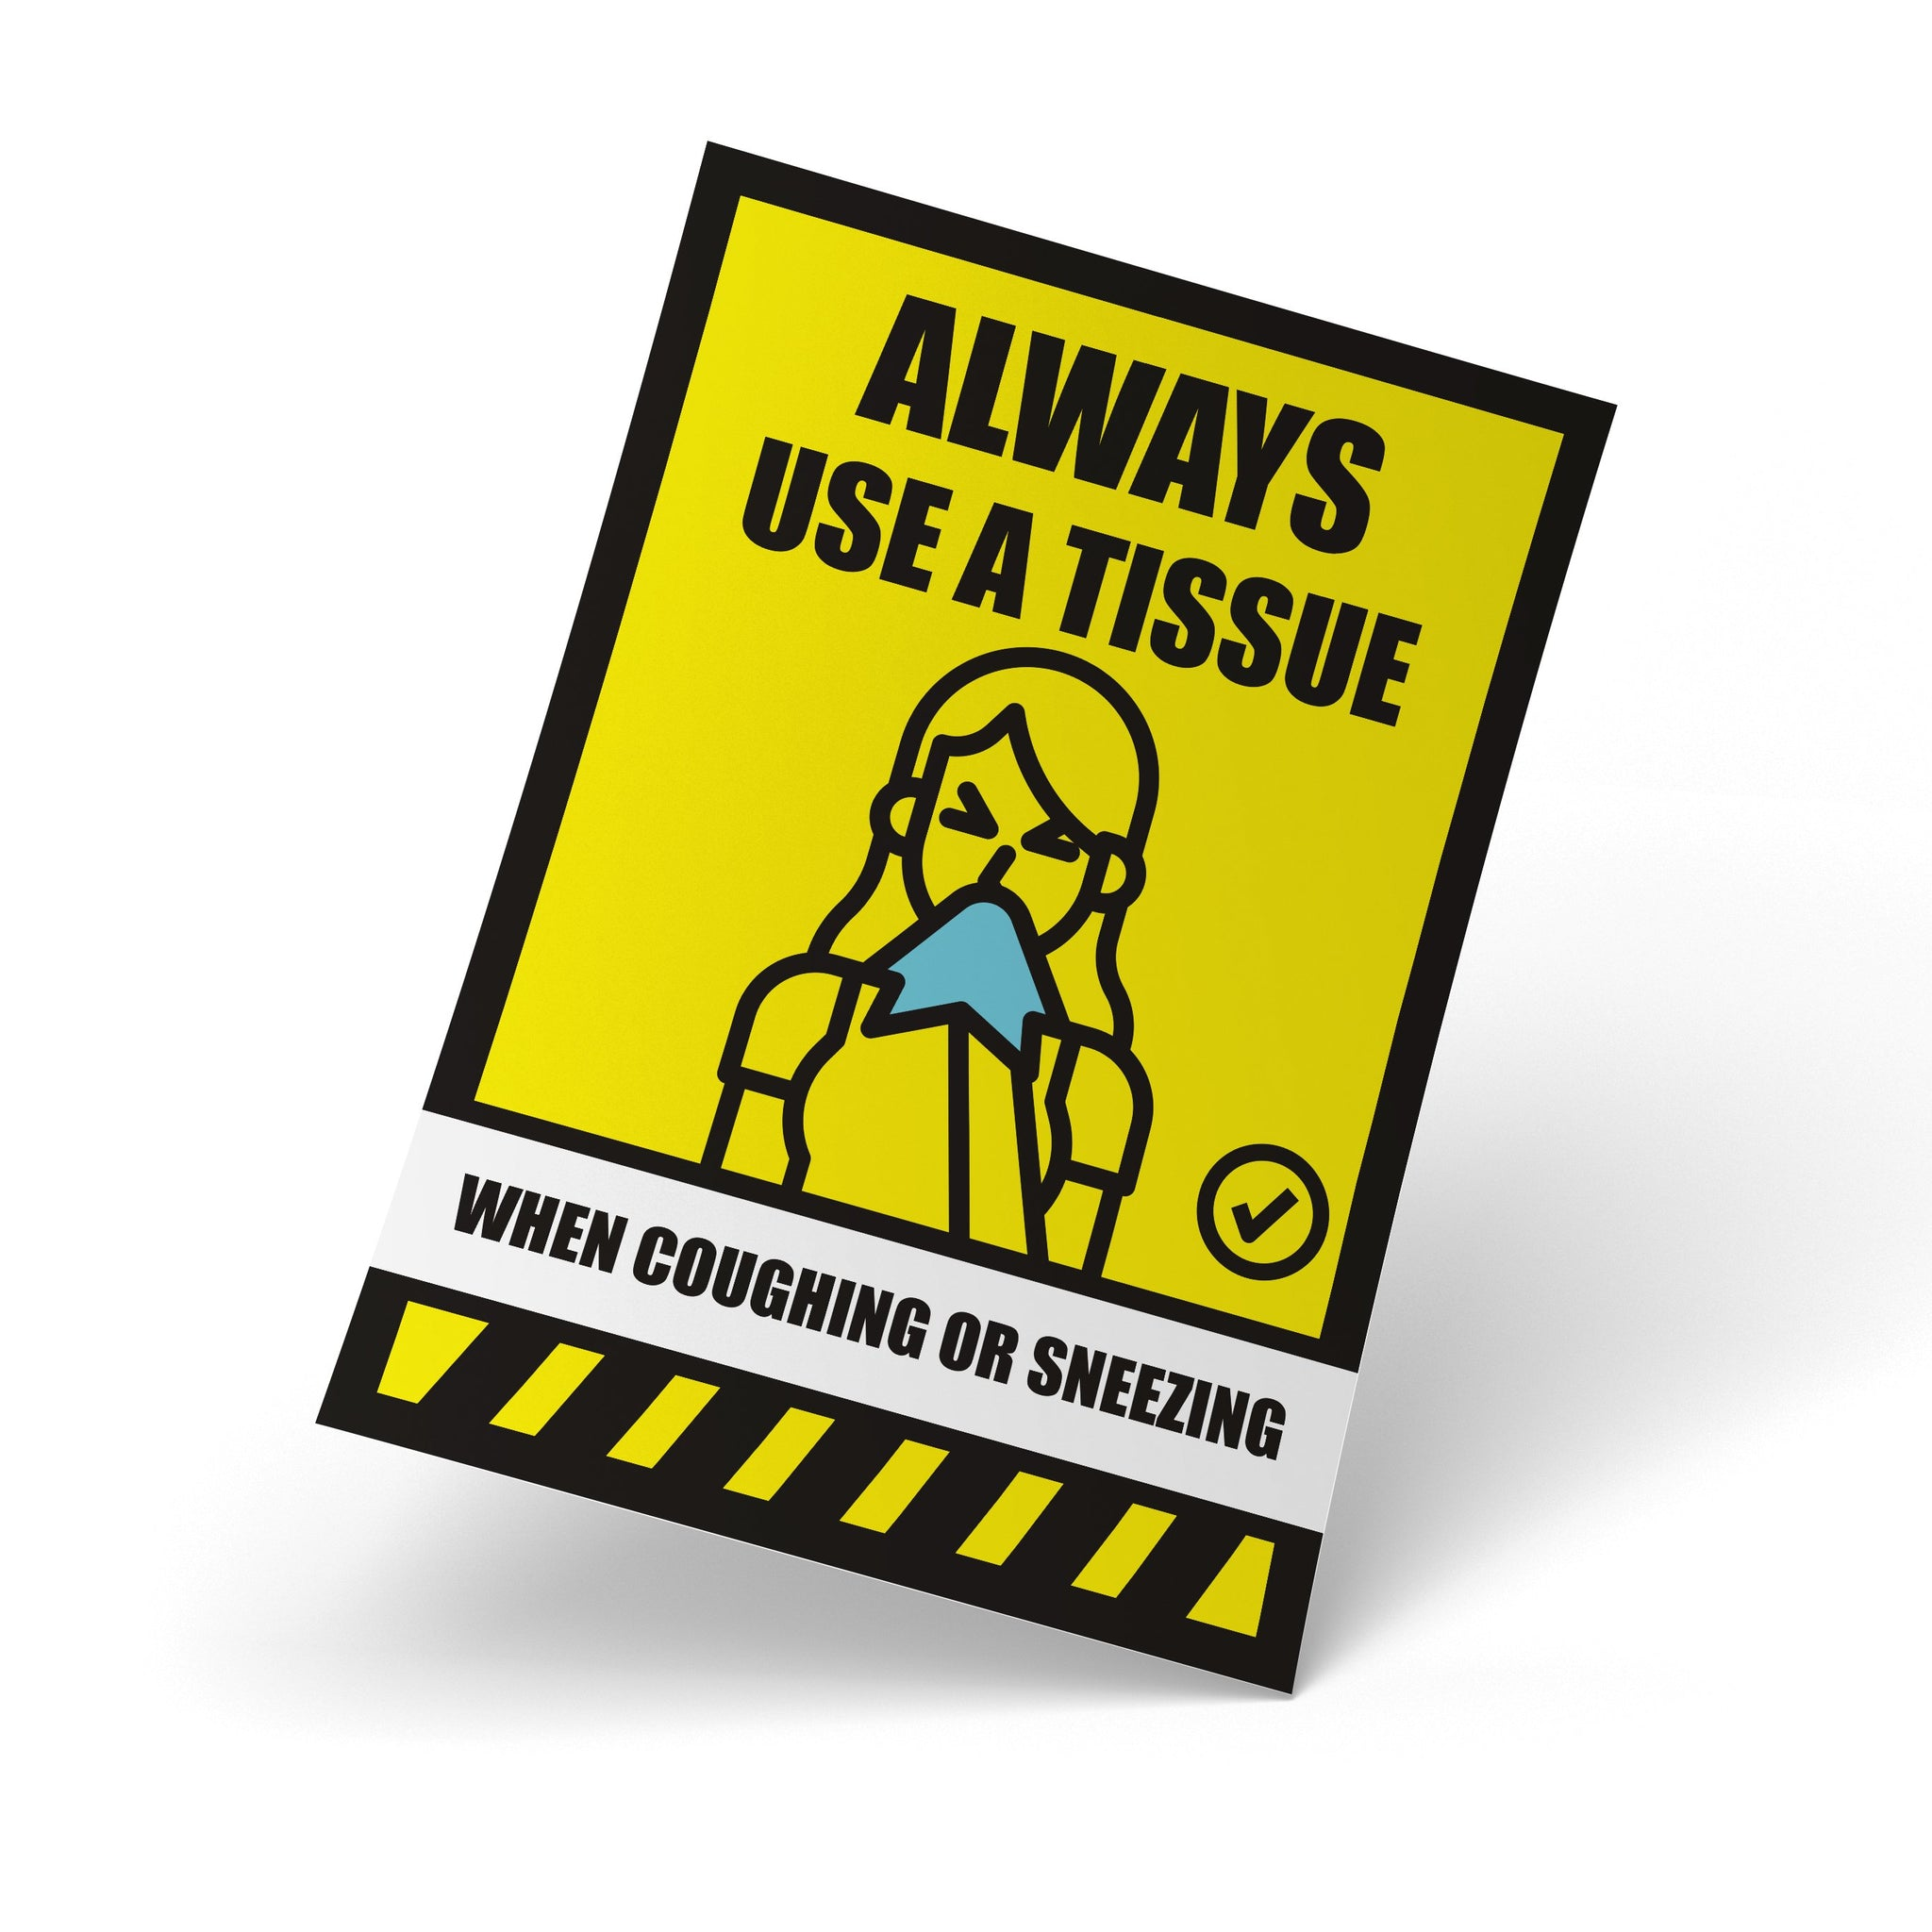 Safety Posters - Always Use A Tissue, Safety Poster - Rounded Edge Store